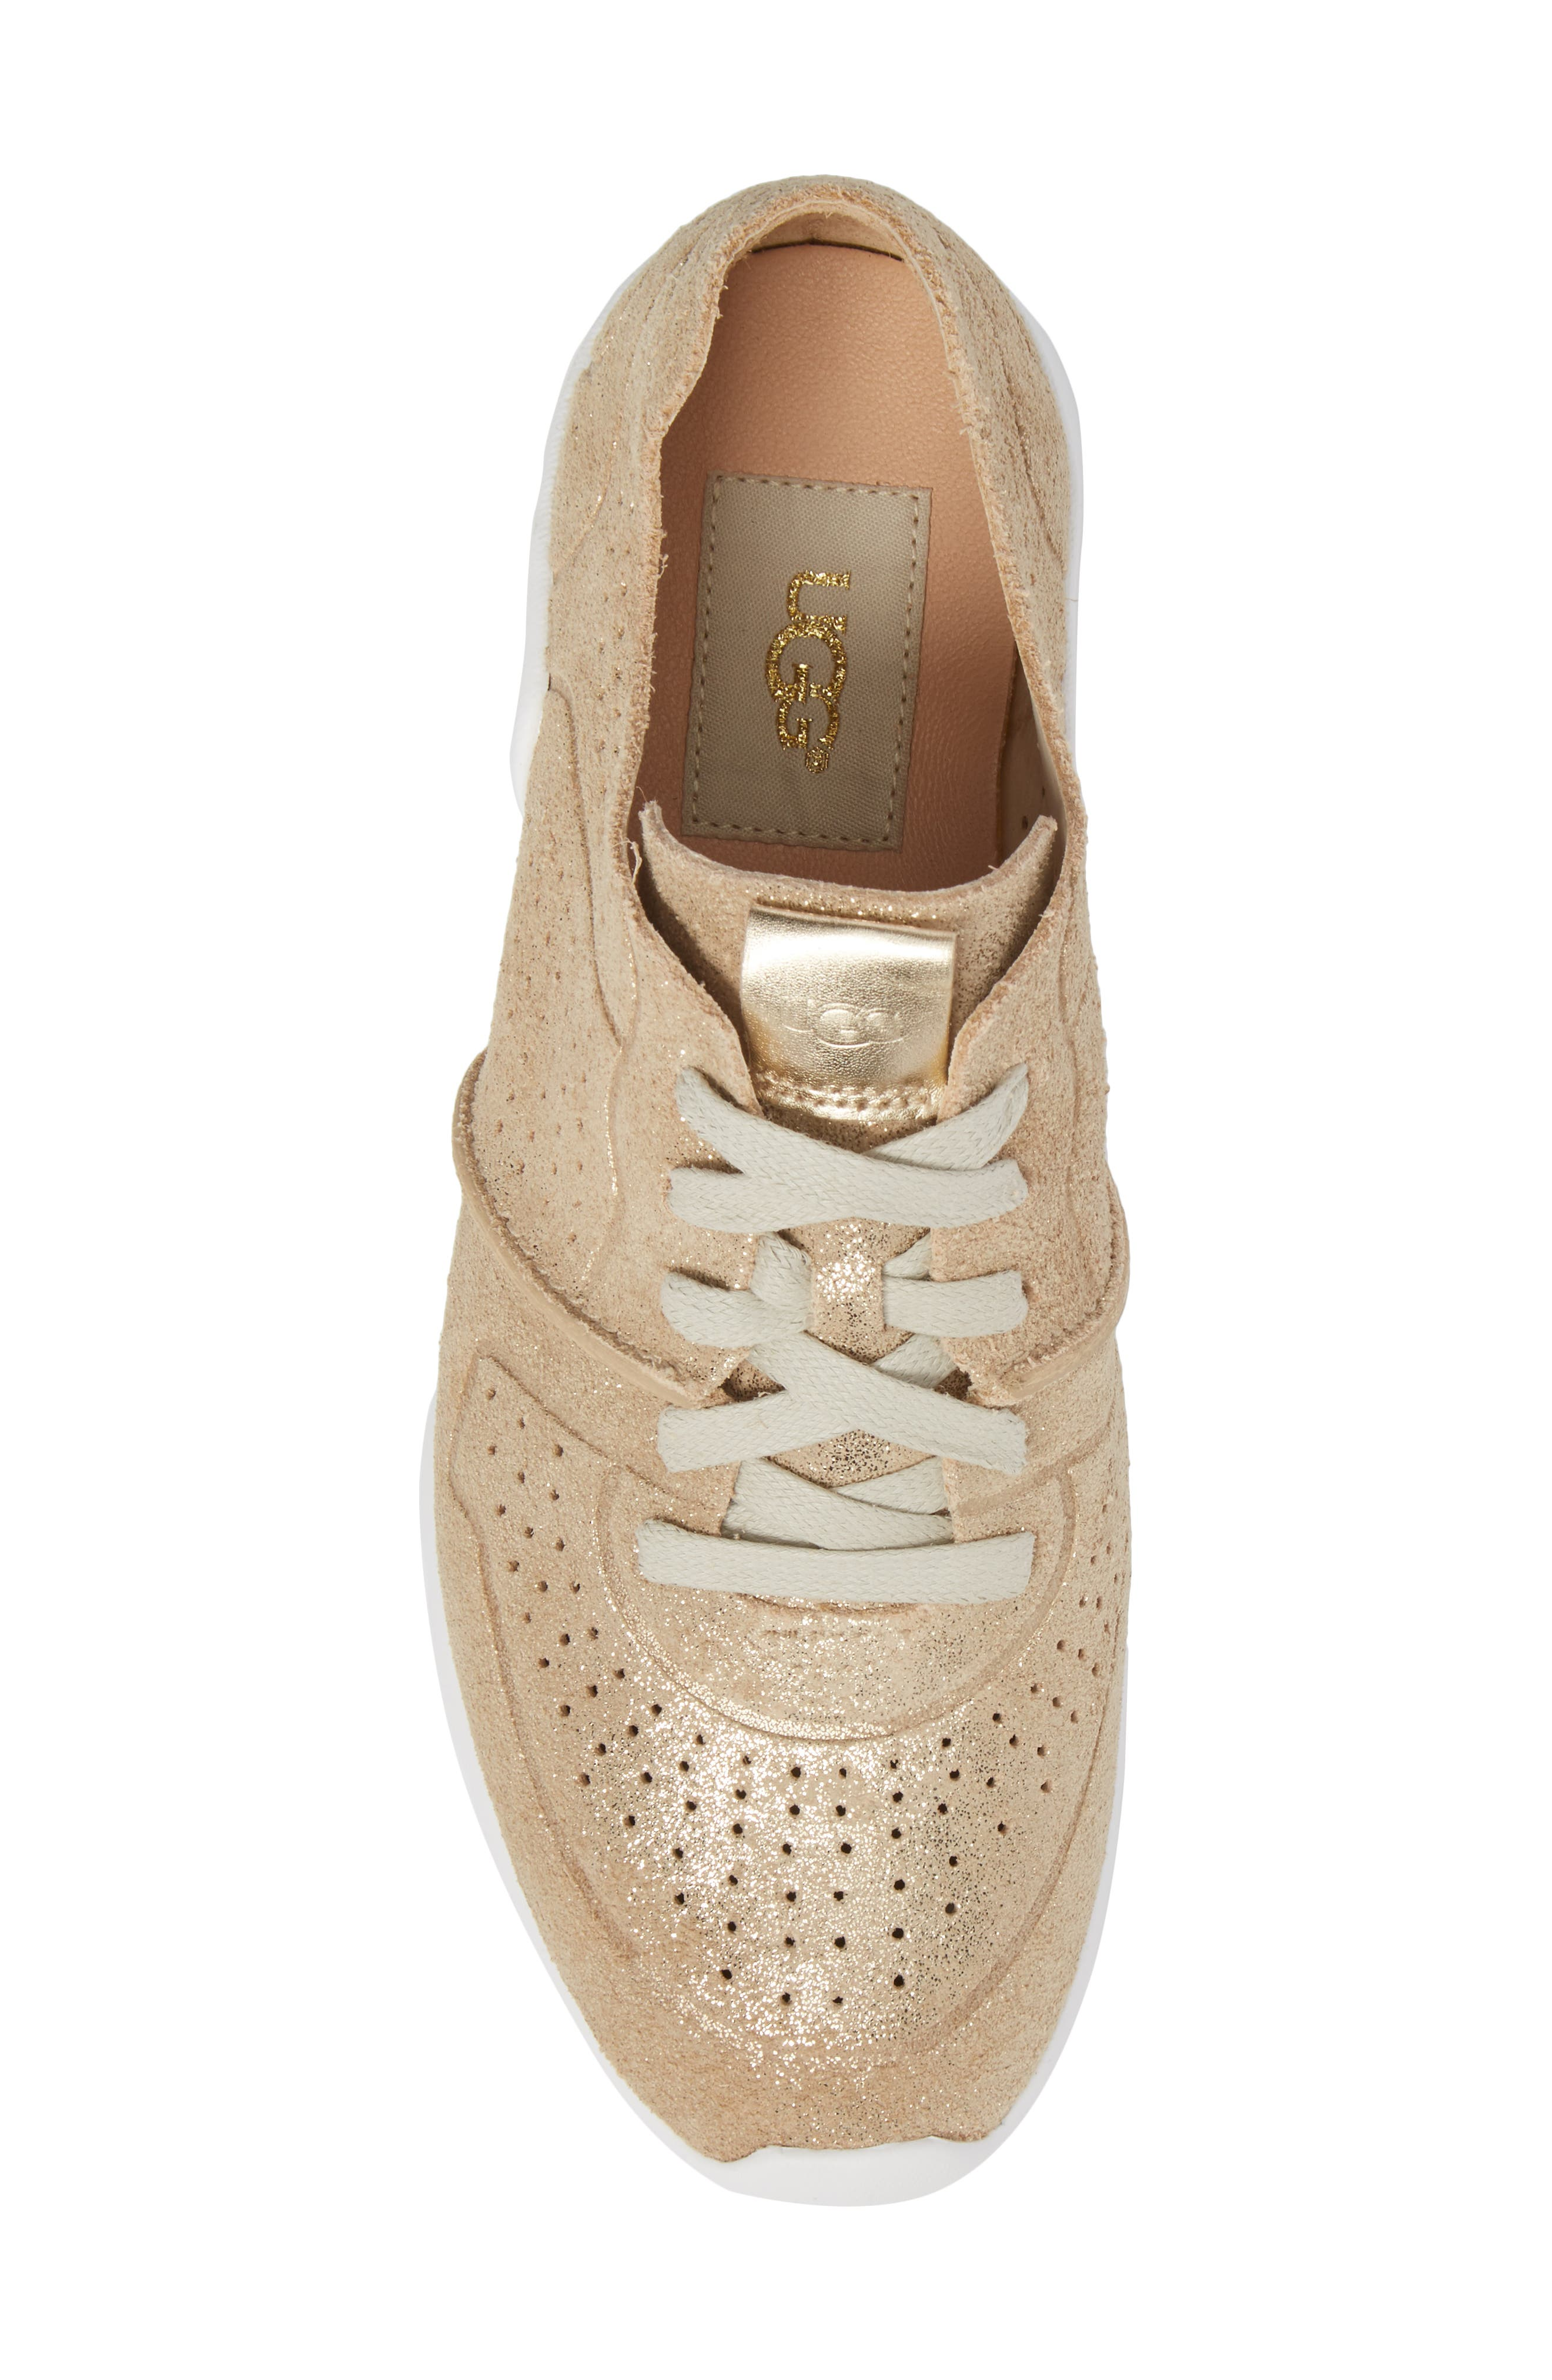 Tye Stardust Sneaker,                             Alternate thumbnail 5, color,                             Gold Leather